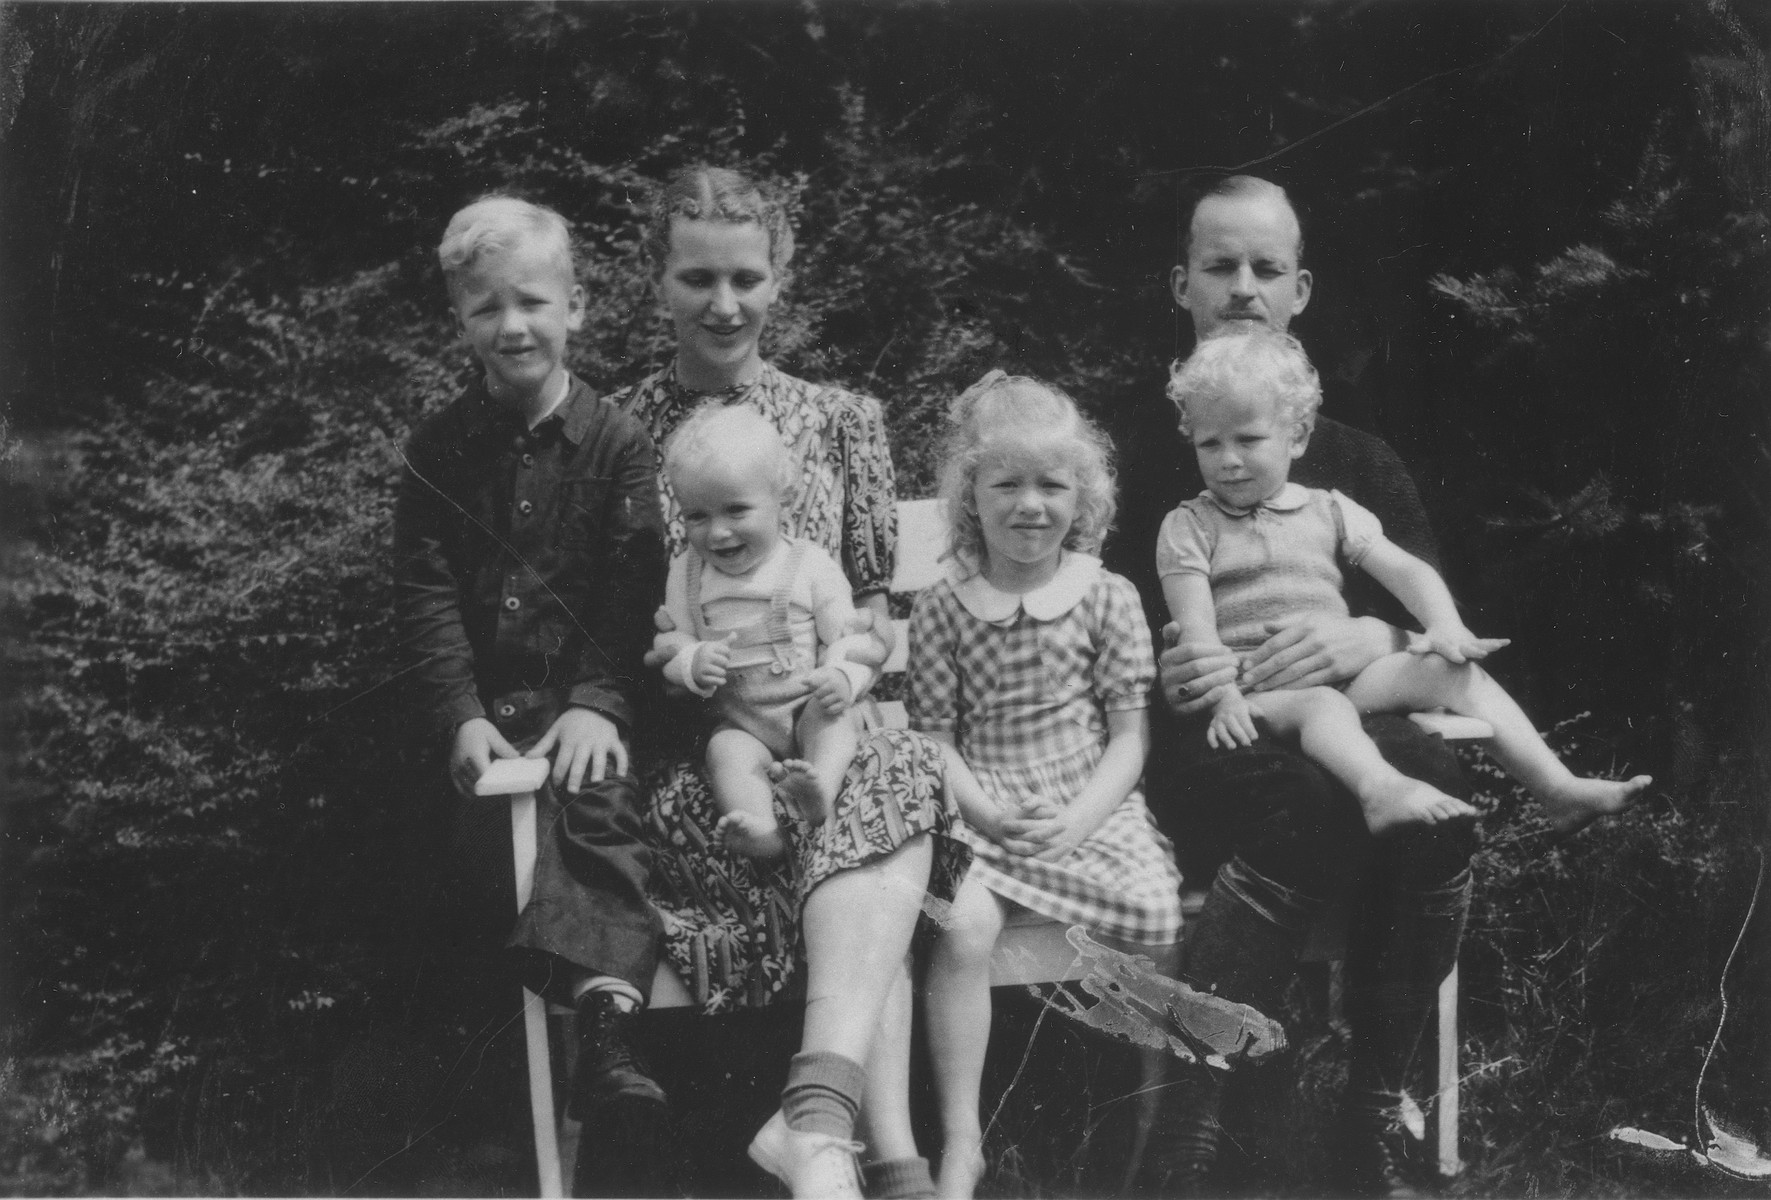 Portrait of the family of the Rev. Adriaan and Ank Faber who hid Gerda Bloch during the German occupation of Holland.  Pictured are Rev. Adriaan and Ank Faber with four of their children:  Edward, Pieter, Hanna and Rene.  The family was later recognized by Yad Vashem as one of the Righteous among the Nations.